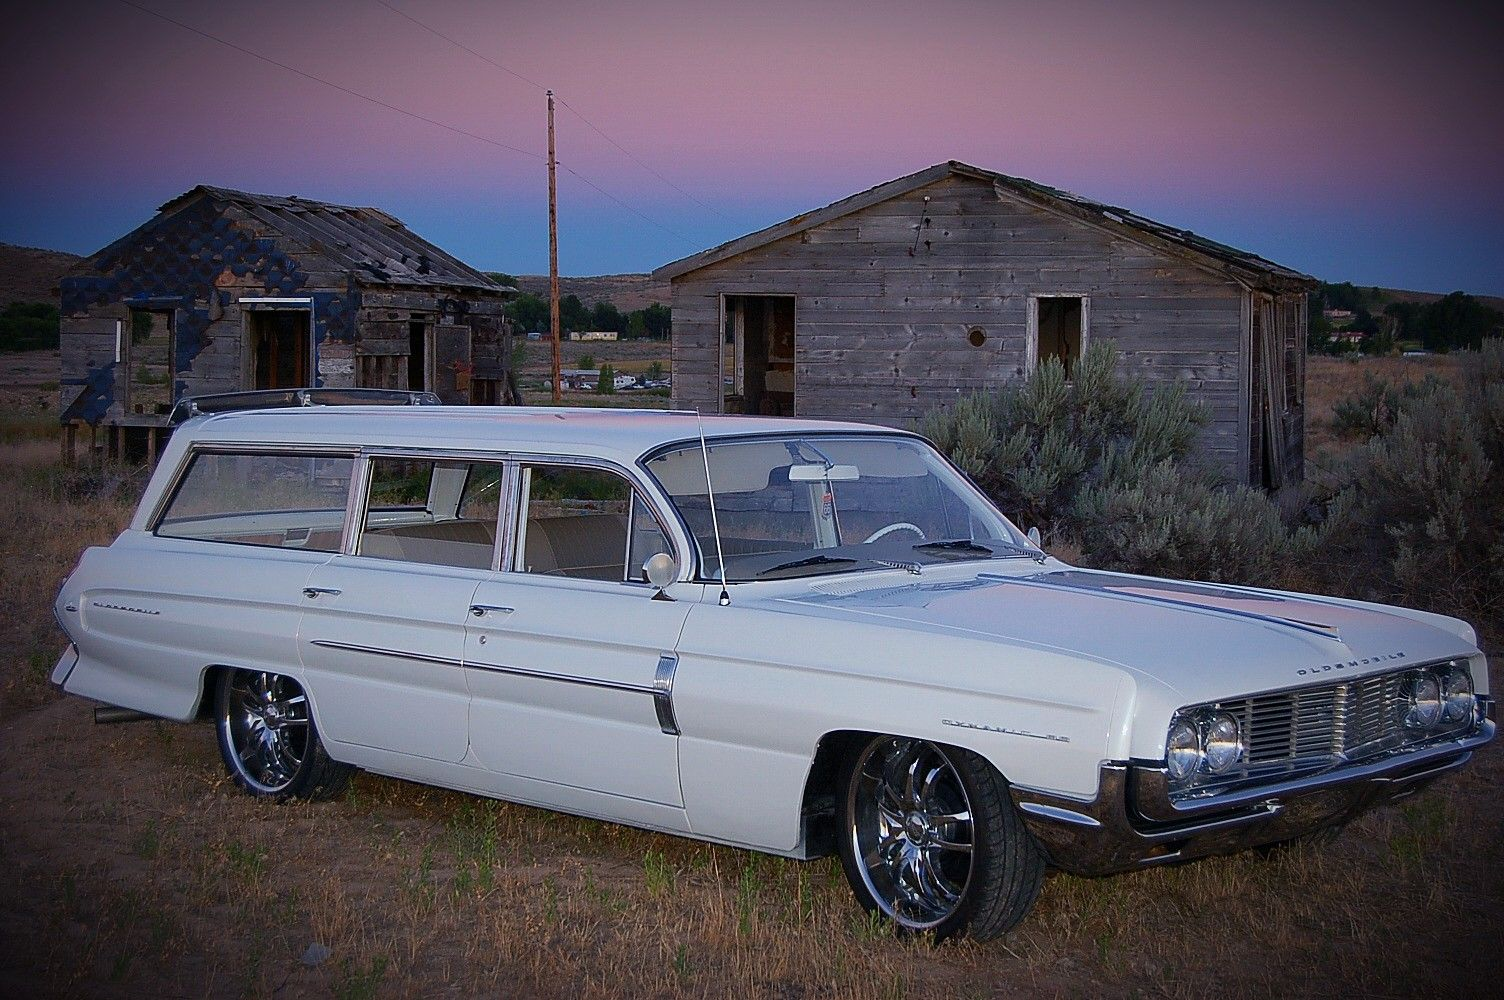 1962 Oldsmobile Dynamic 88 Fiesta Station Wagon White, for sale in ...